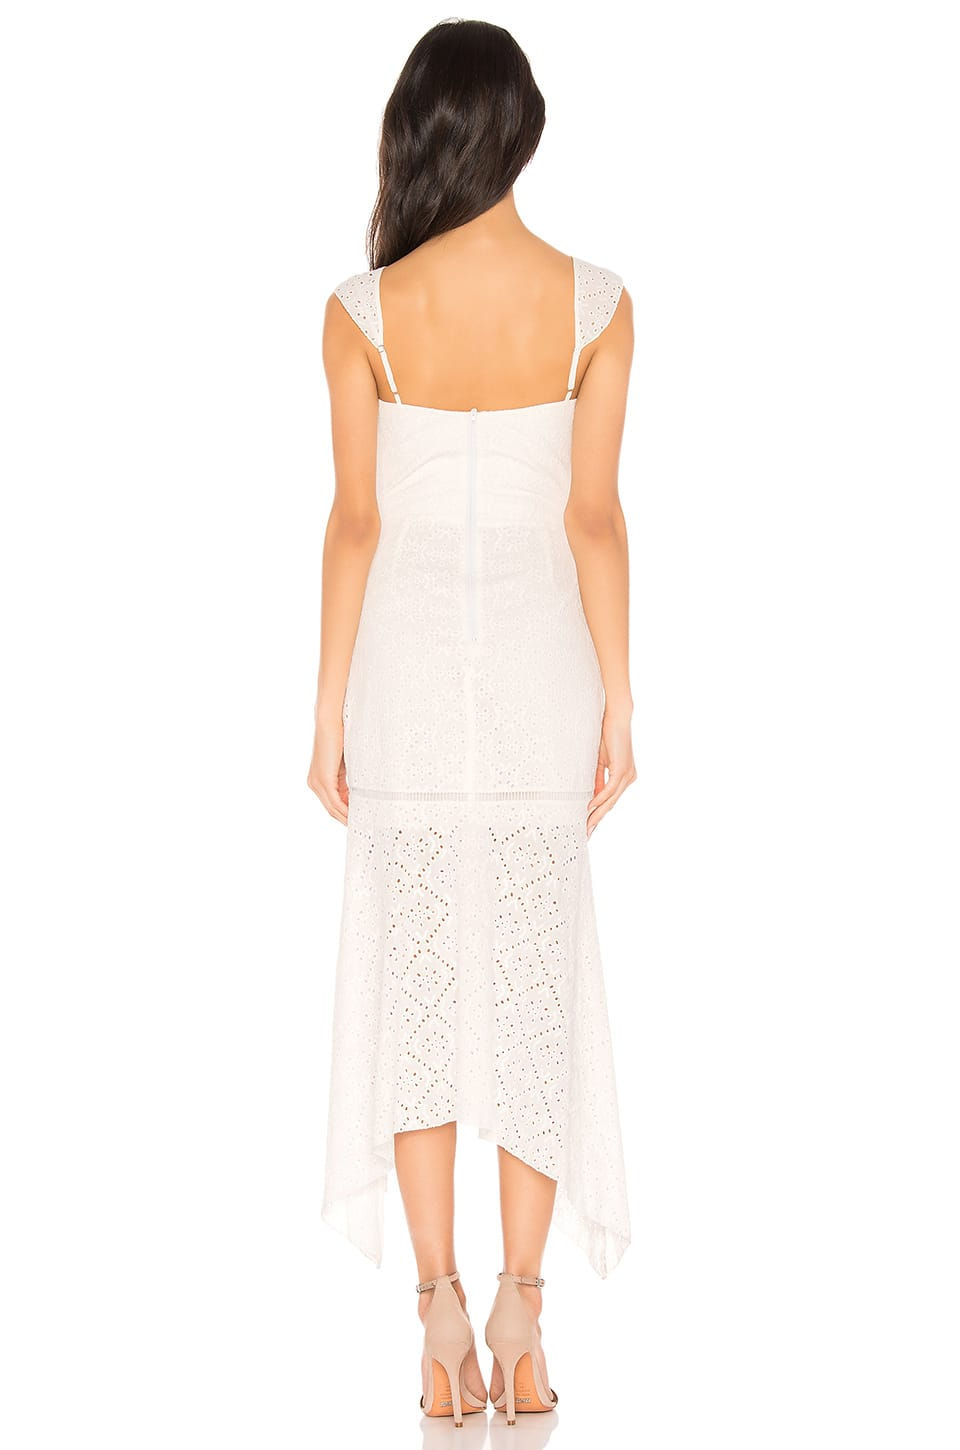 Karina Grimaldi Irma Eyelet Dress